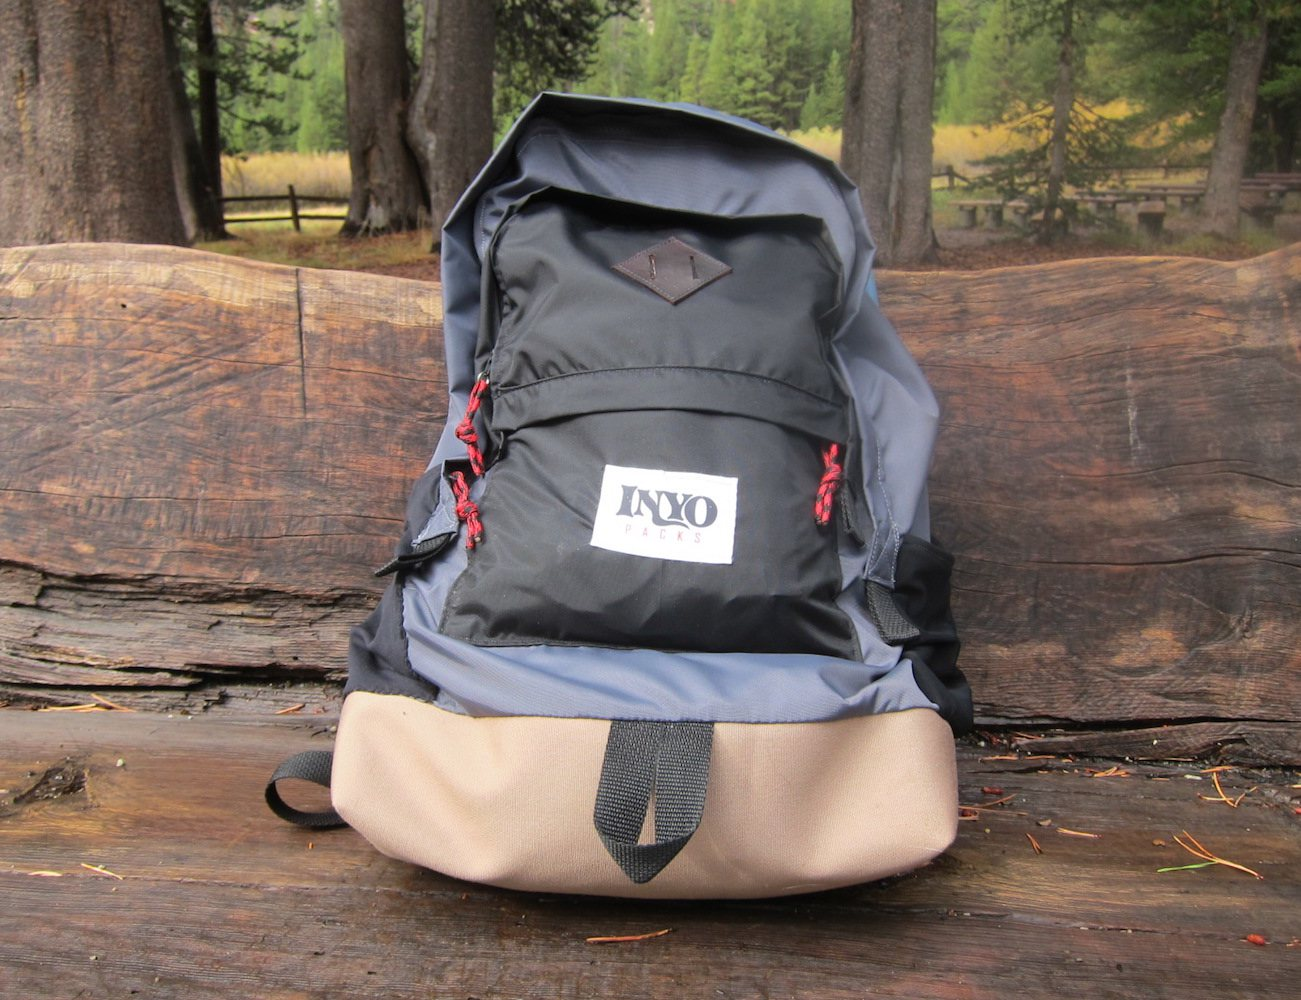 inyo-pack-02